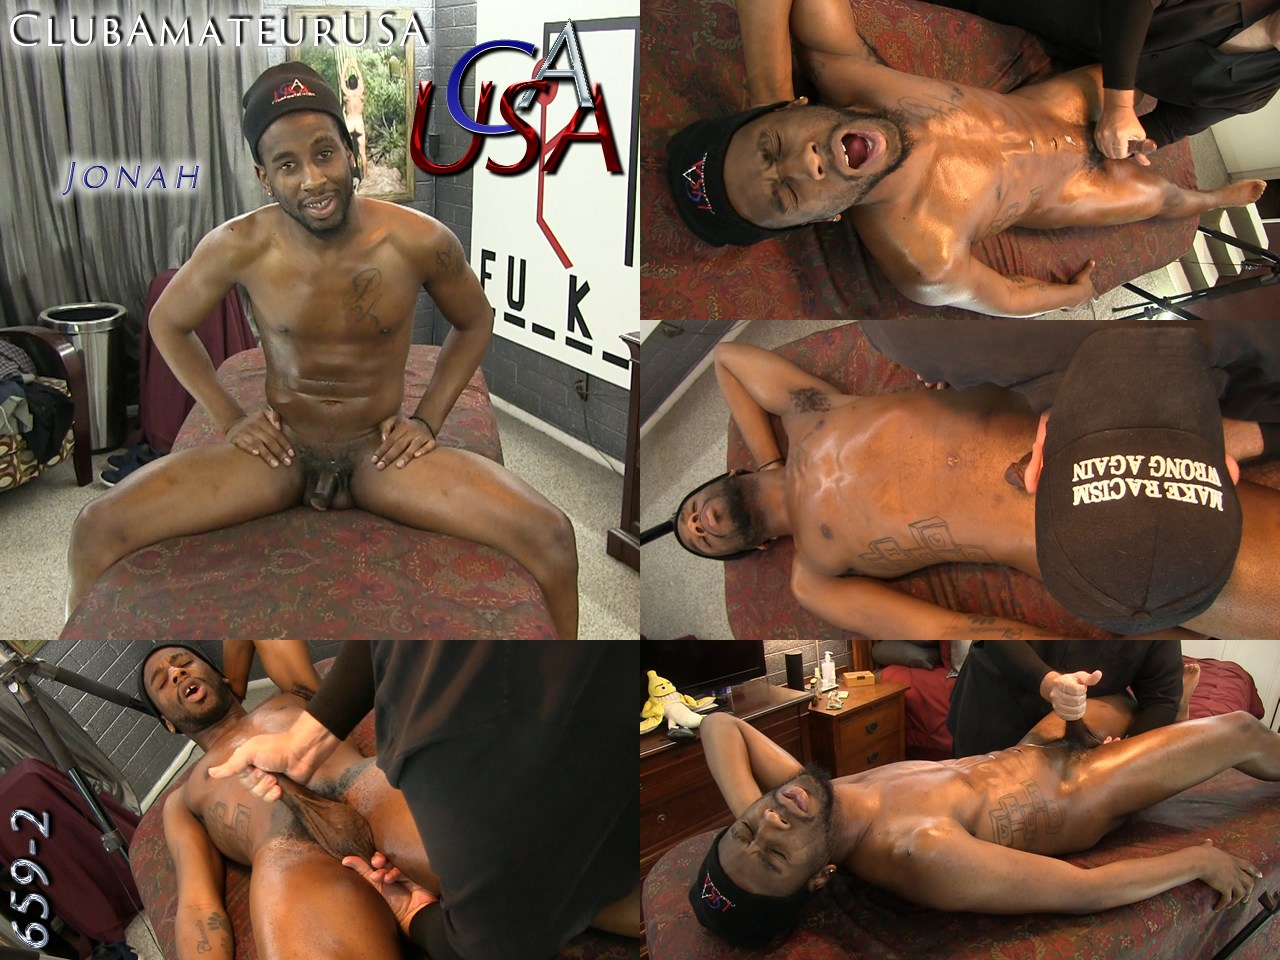 CAUSA 659 Jonah - 2 of 2 - ClubAmateurUSA Bella Reese Free Videos